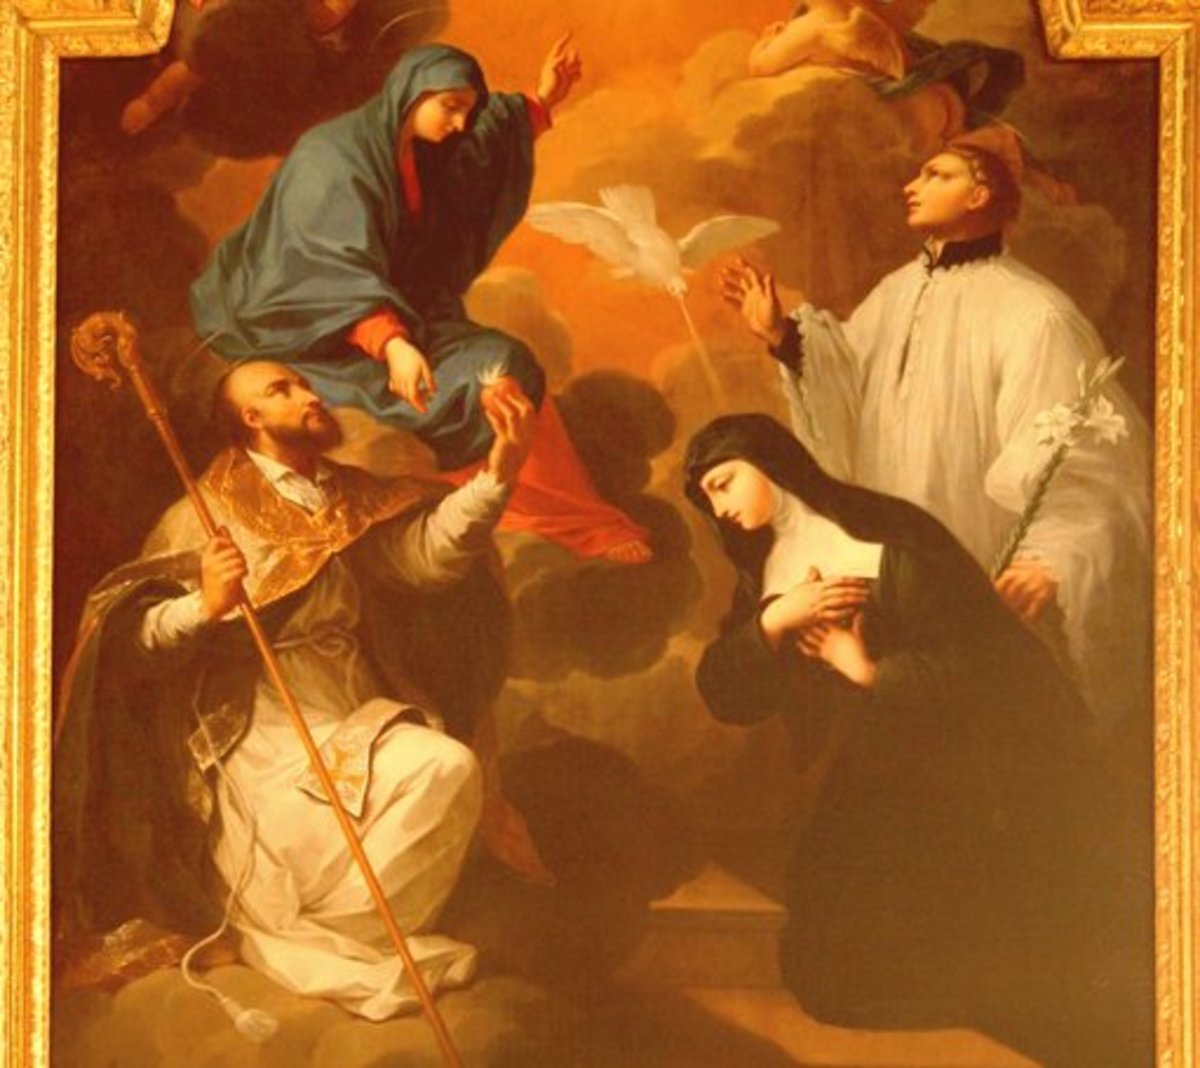 This painting depicts St.Francis de Sales on the left and St. Jane Frances on the right. Together they founded the Order of the Visitation.